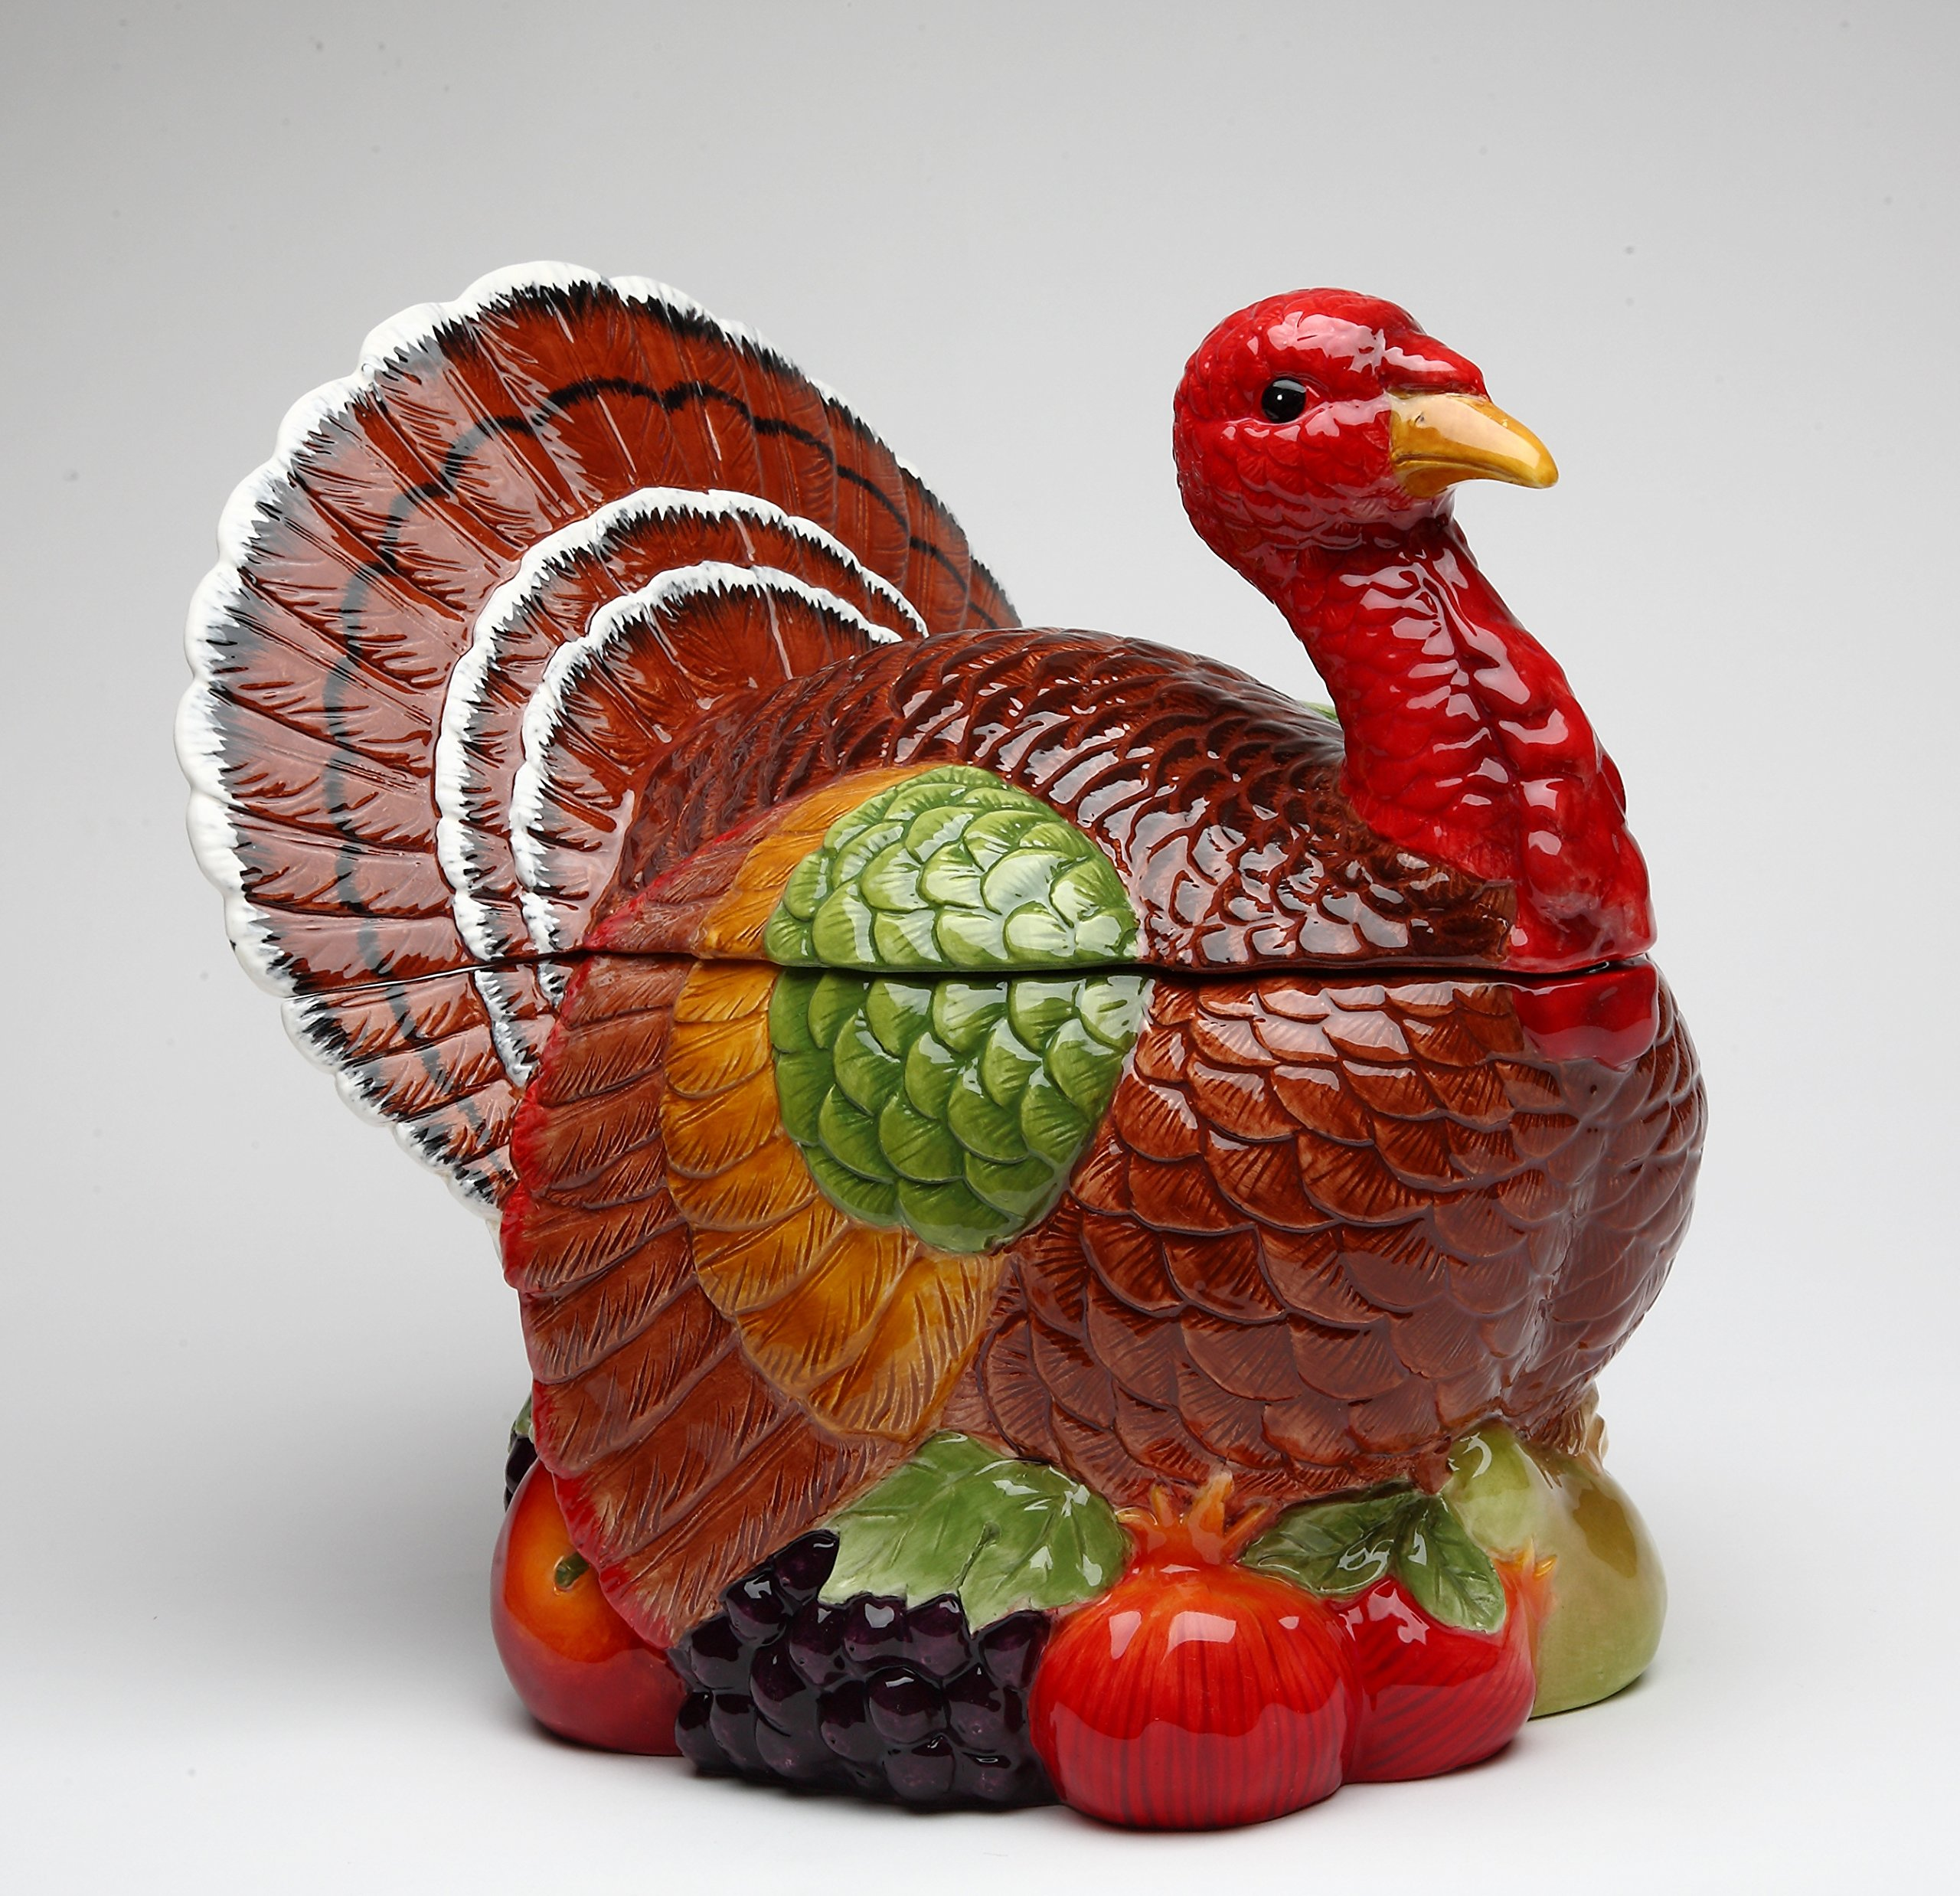 Cosmos Gifts 10712 Fine Ceramic Hand Painted Thanksgiving Harvest Turkey Cookie Jar, 10'' H by Cosmos Gifts